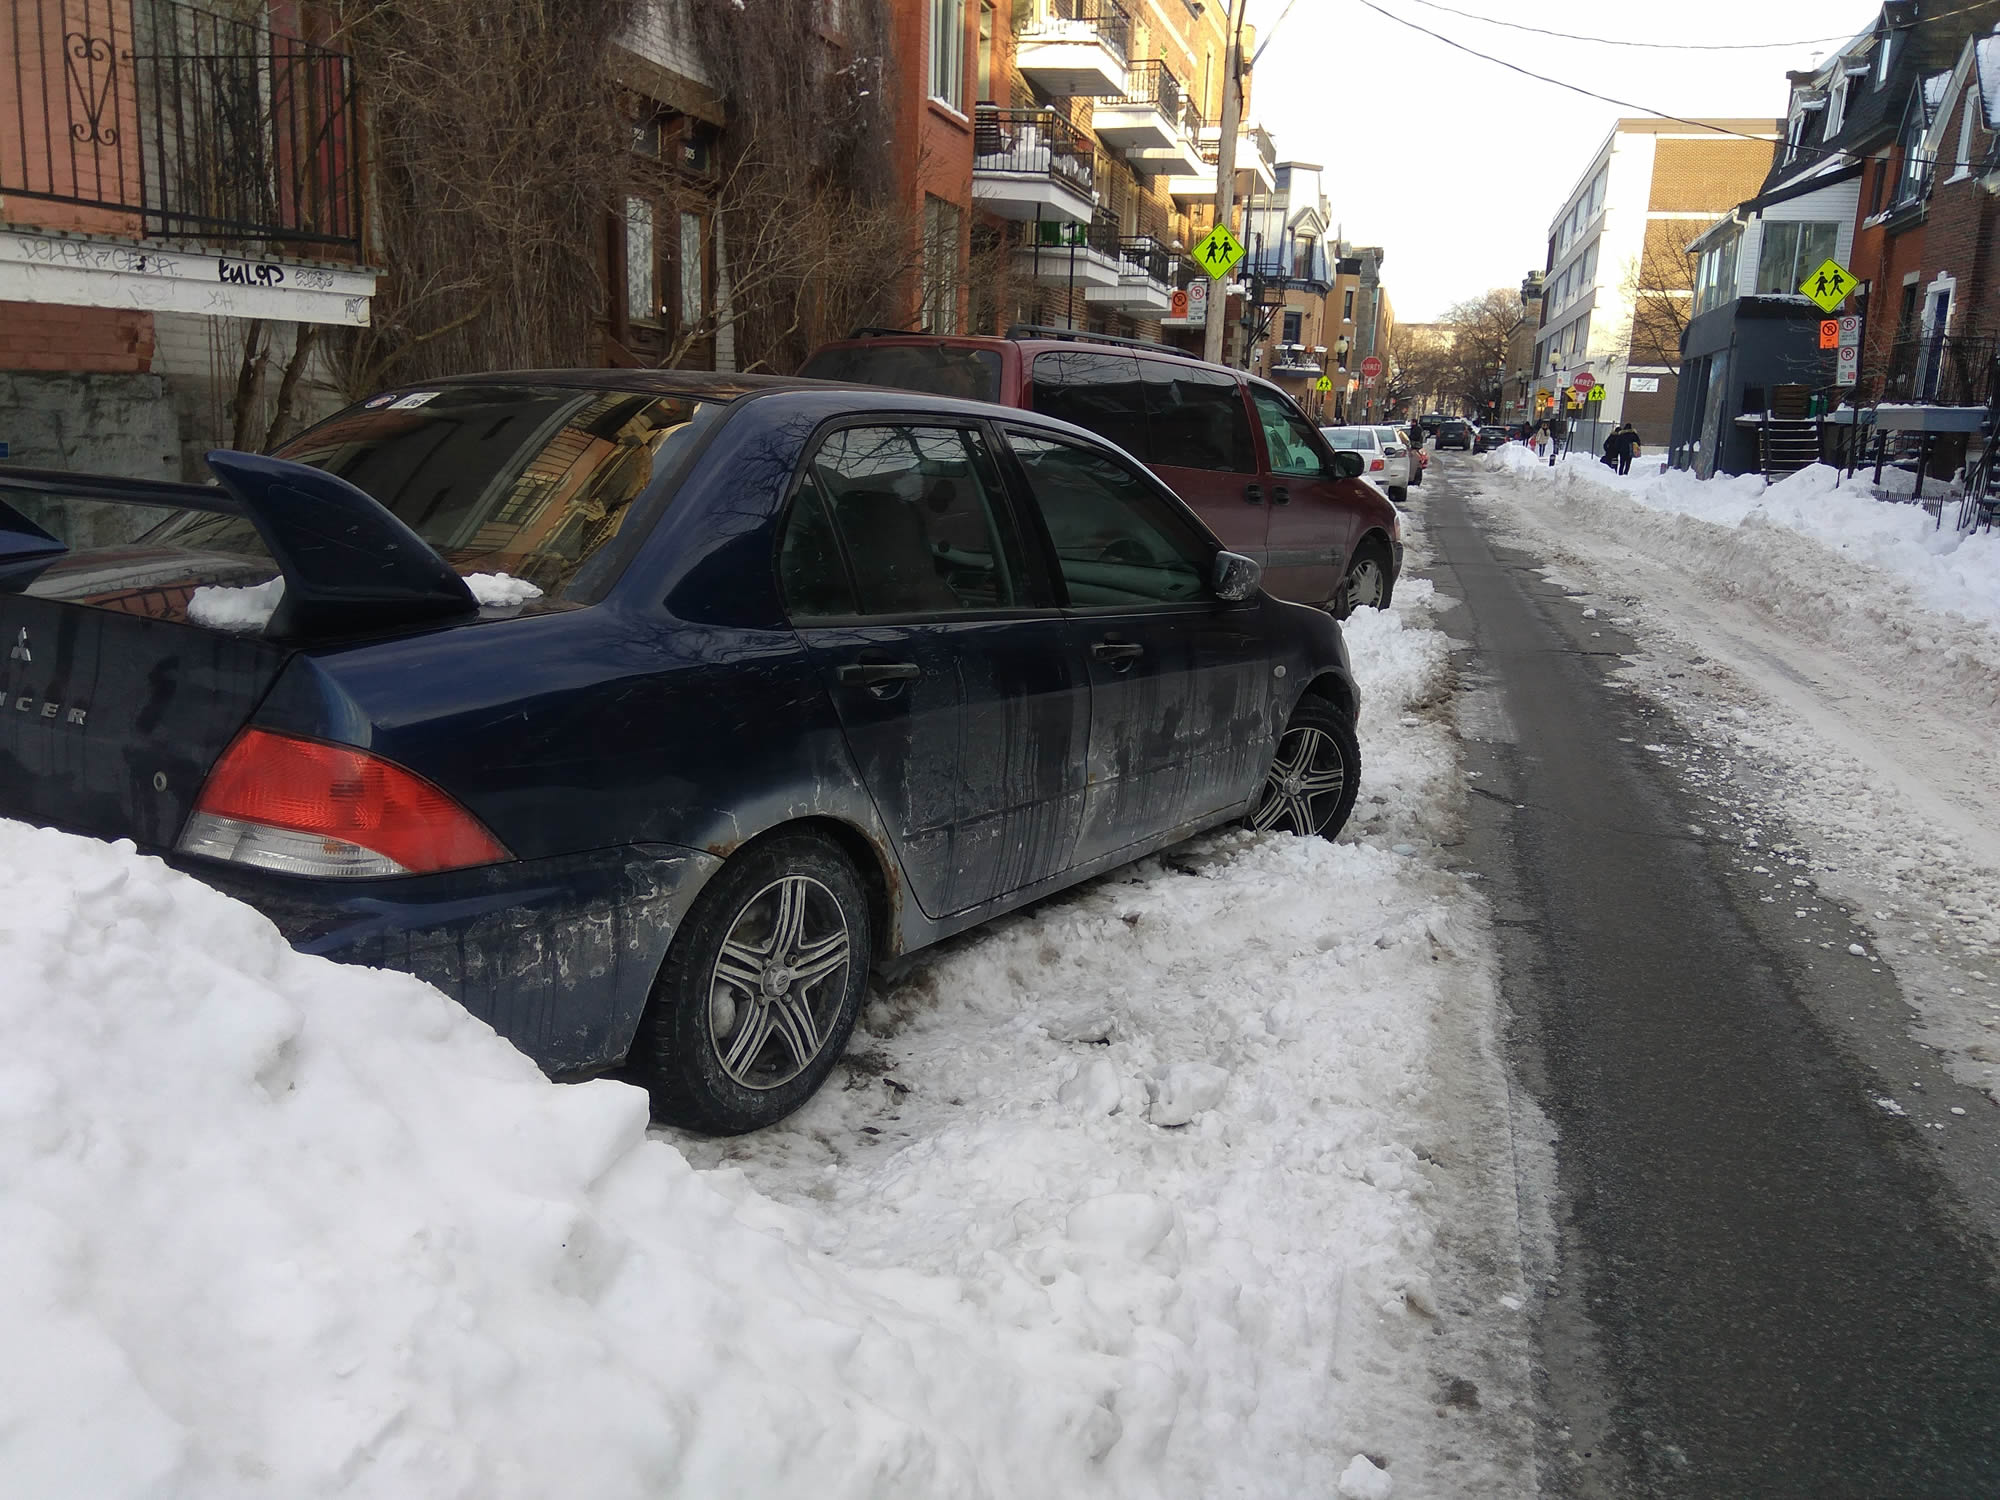 Diagonal parking when the street is full of snow